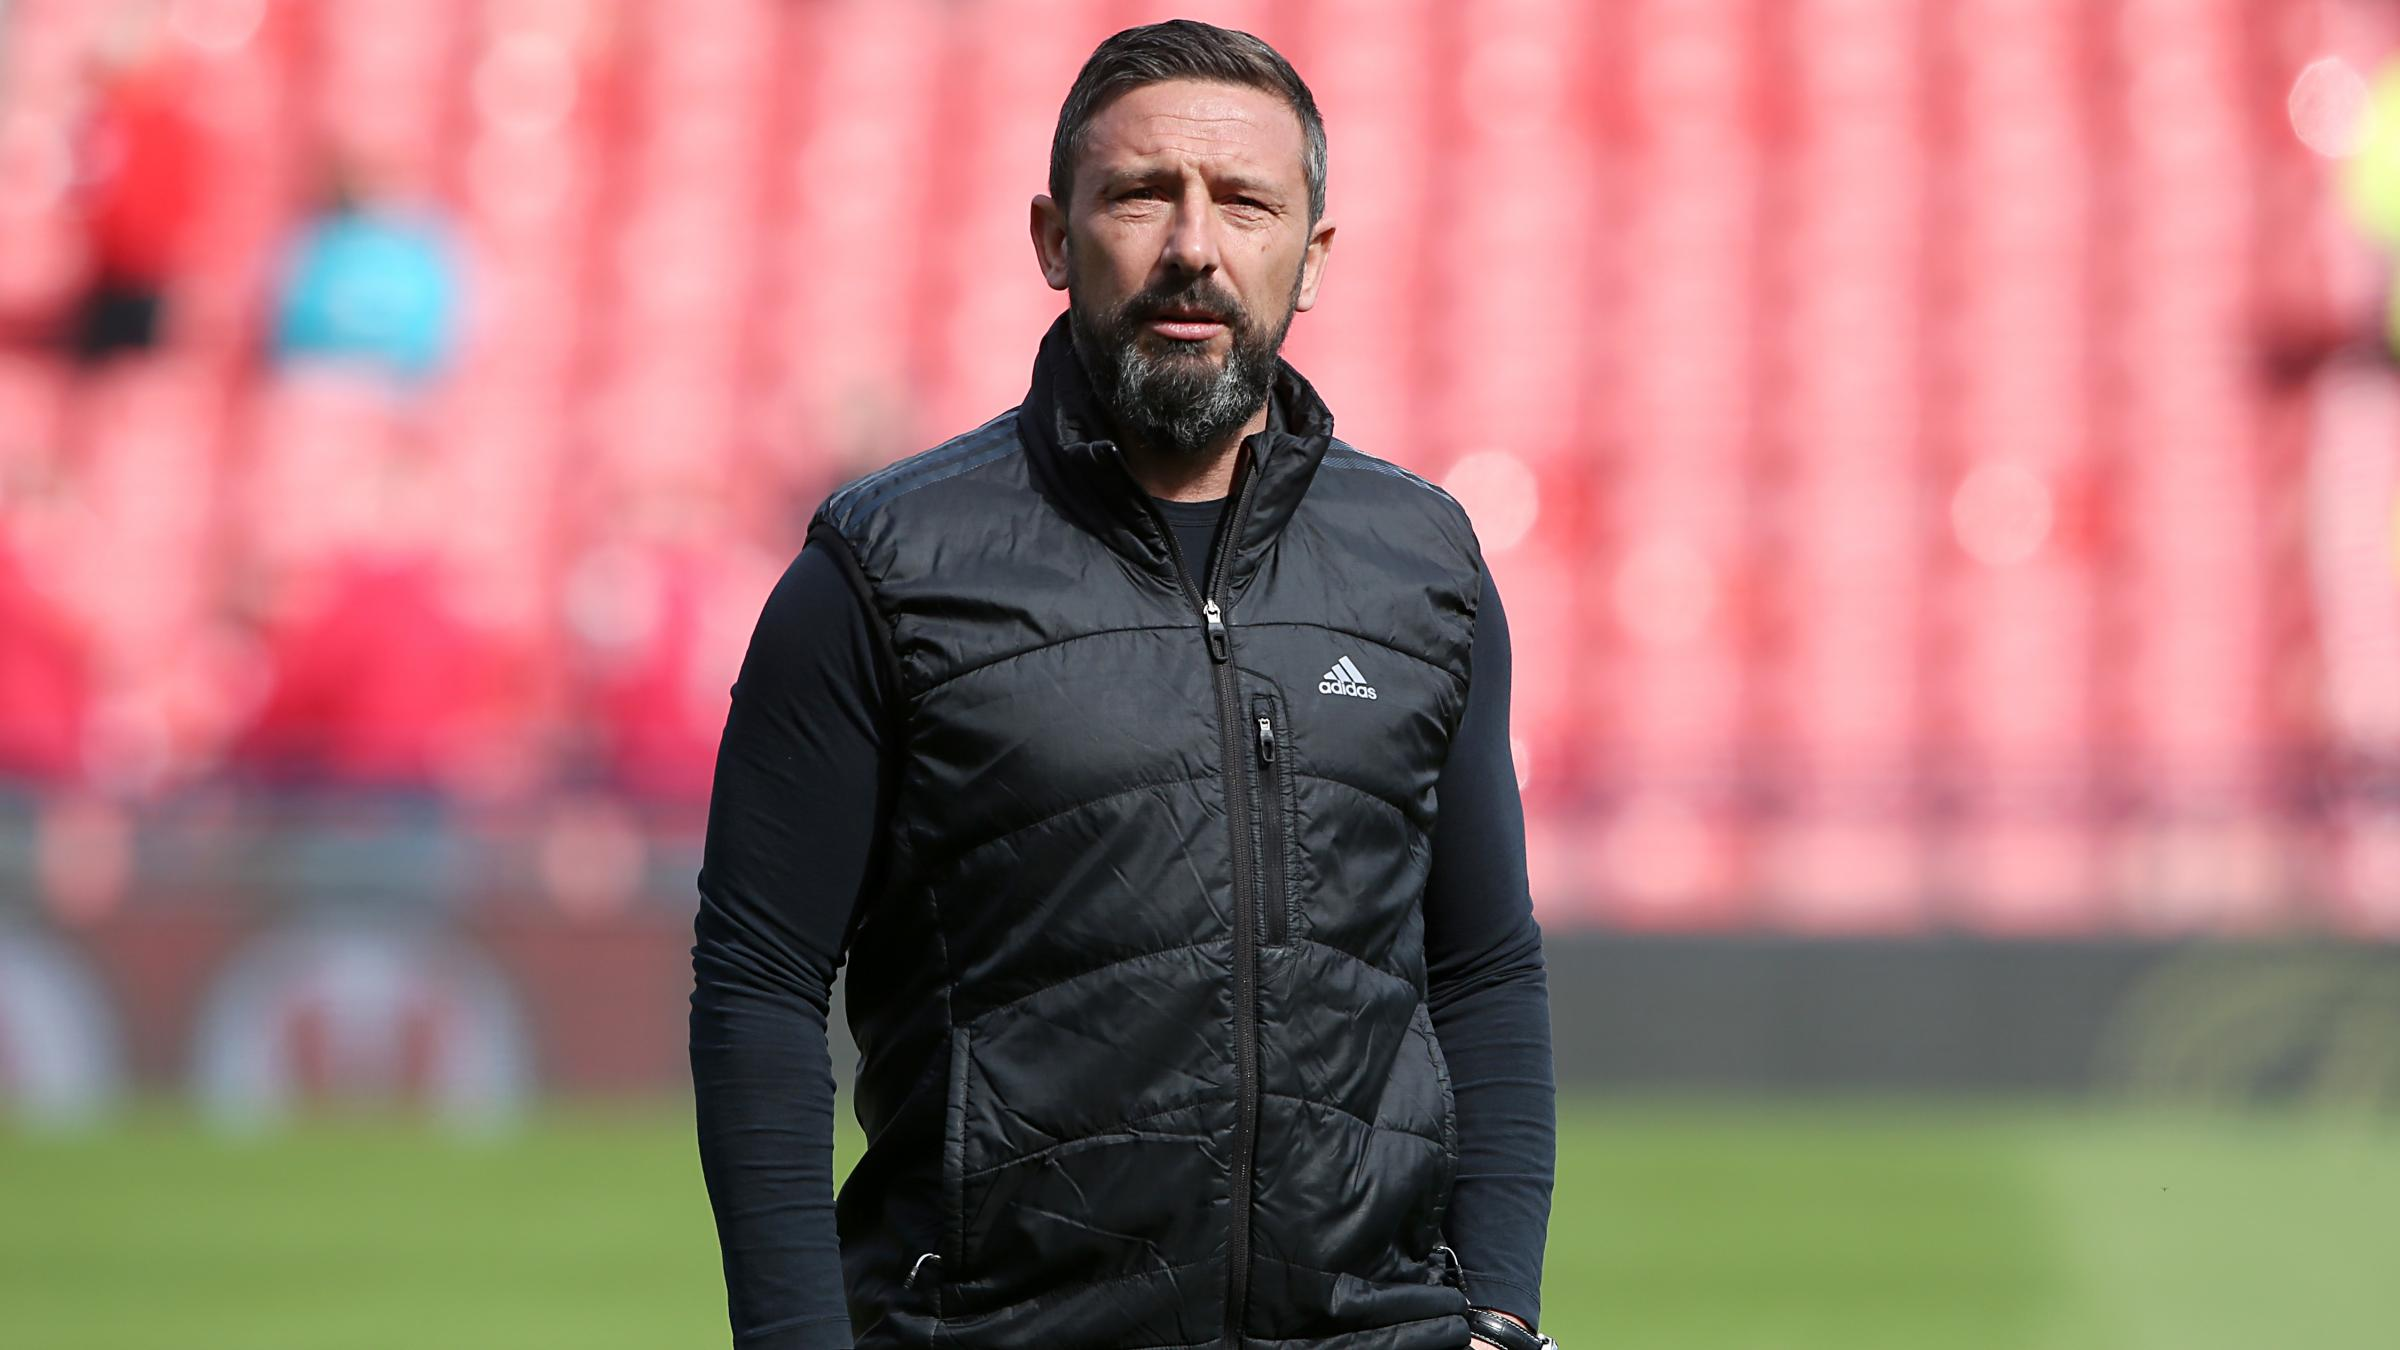 Aberdeen boss Derek McInnes turns down Sunderland job